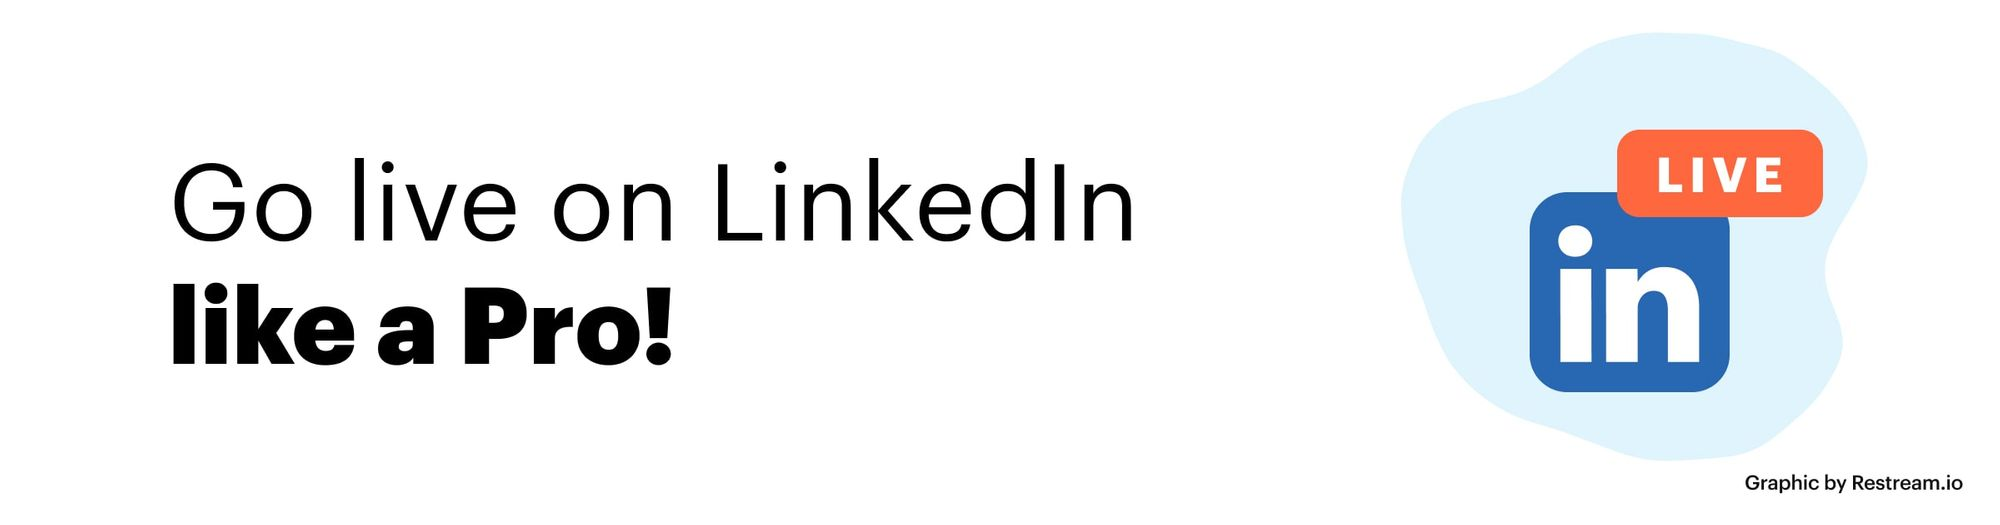 Go live on LinkedIn like a pro!